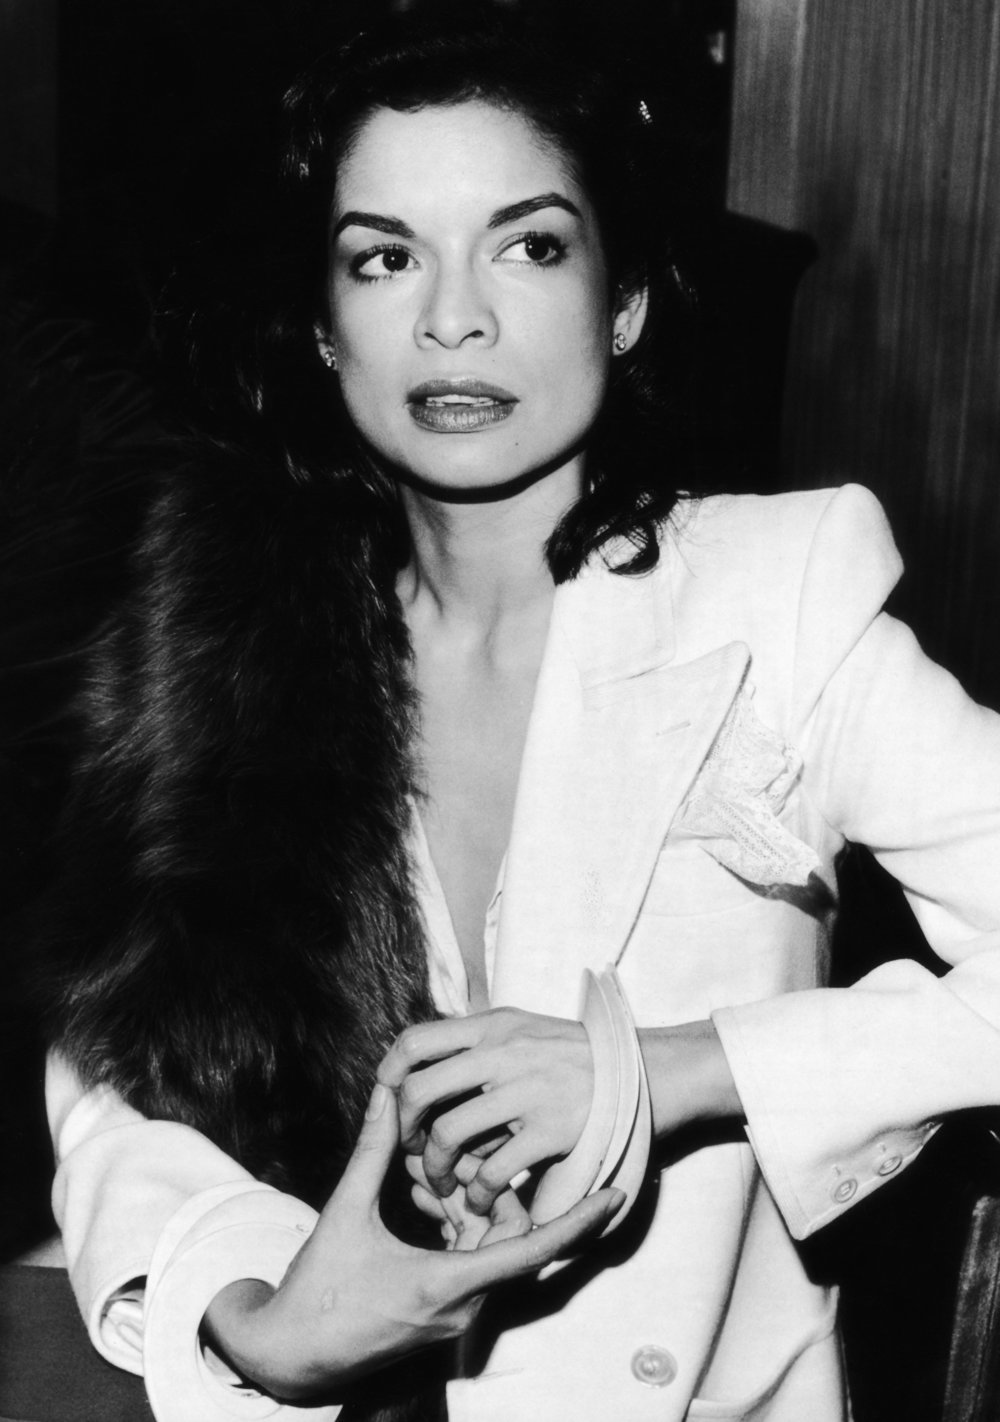 Bianca Jagger wearing Yves Saint Laurent 'Le Smoking' suit whilst attending a press conference in Munich for the film  The American Success Company , 1980. Photo source: The Red List.